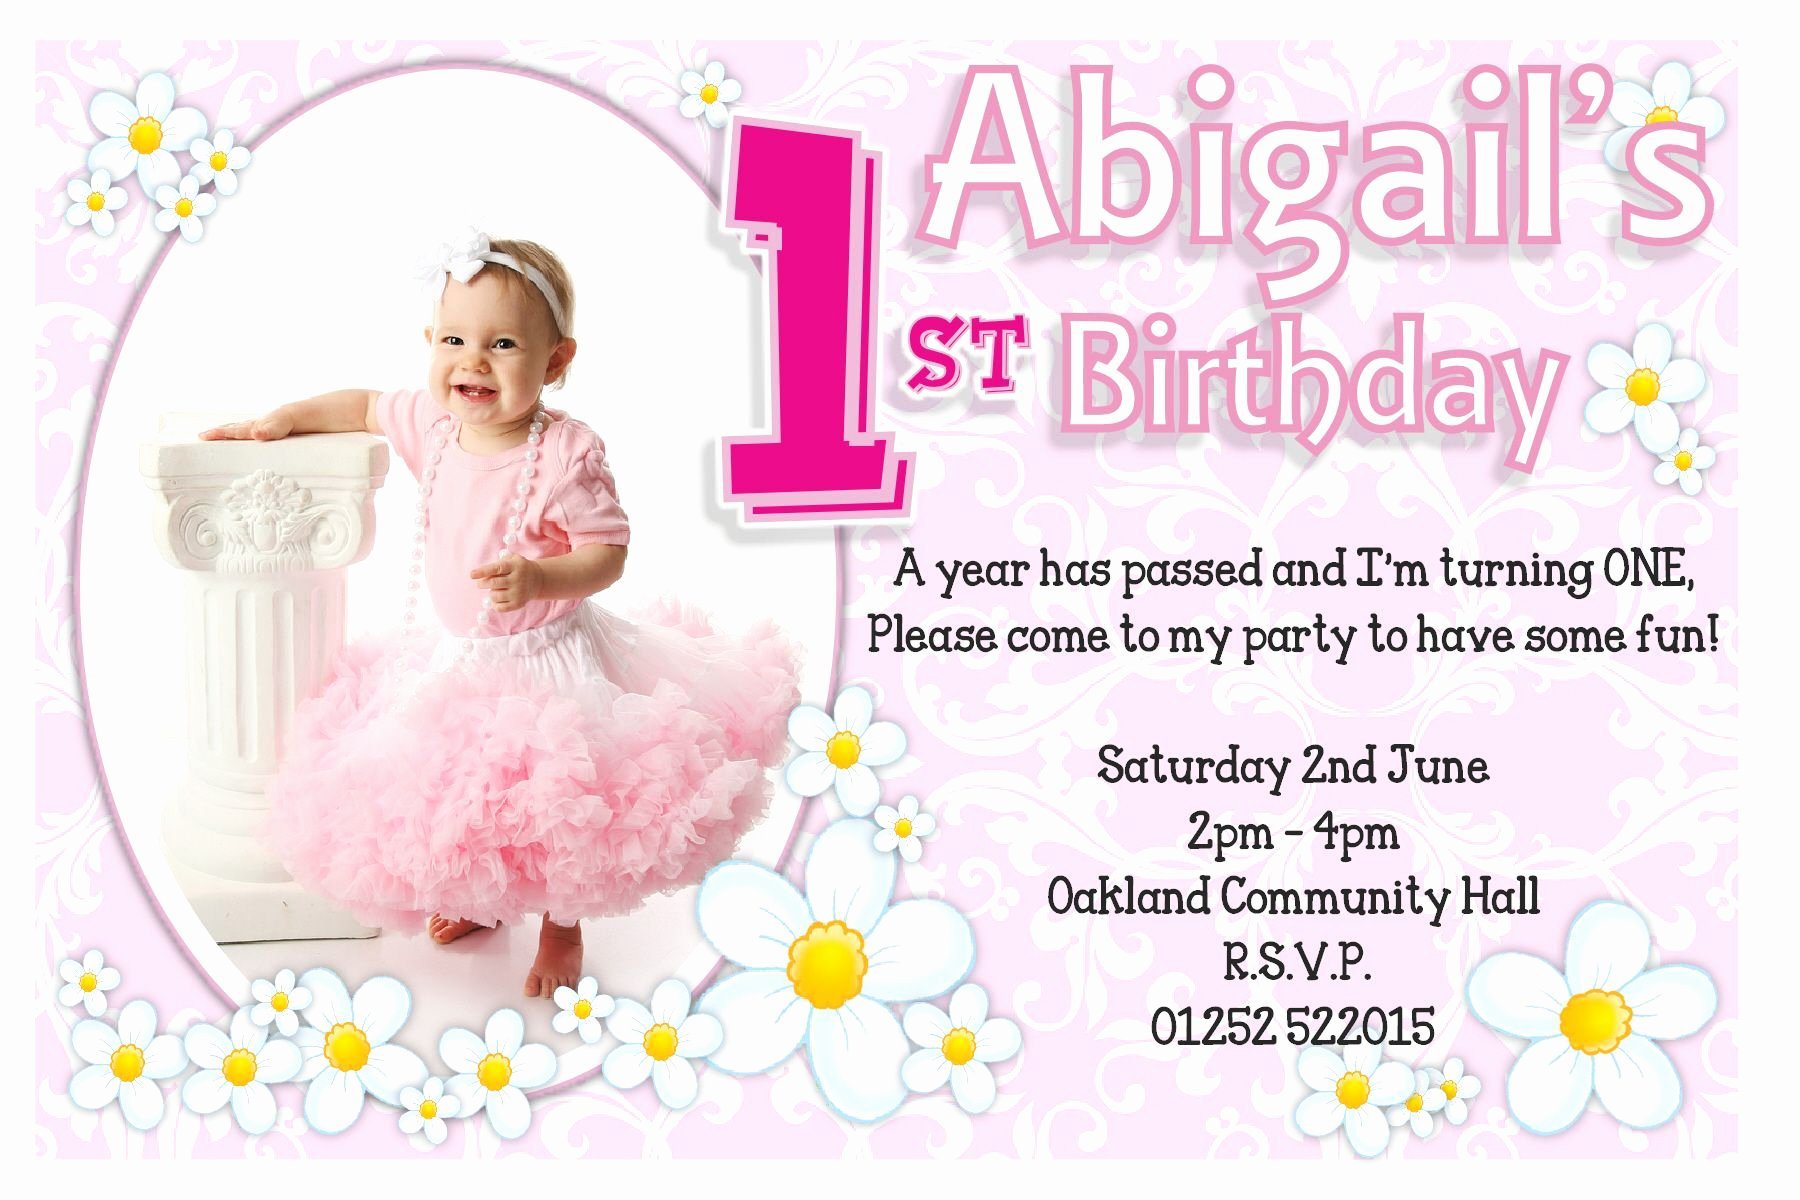 First Birthday Invitation Template Free Elegant 1st Birthday Invitations Girl Free Template 1st Birthday